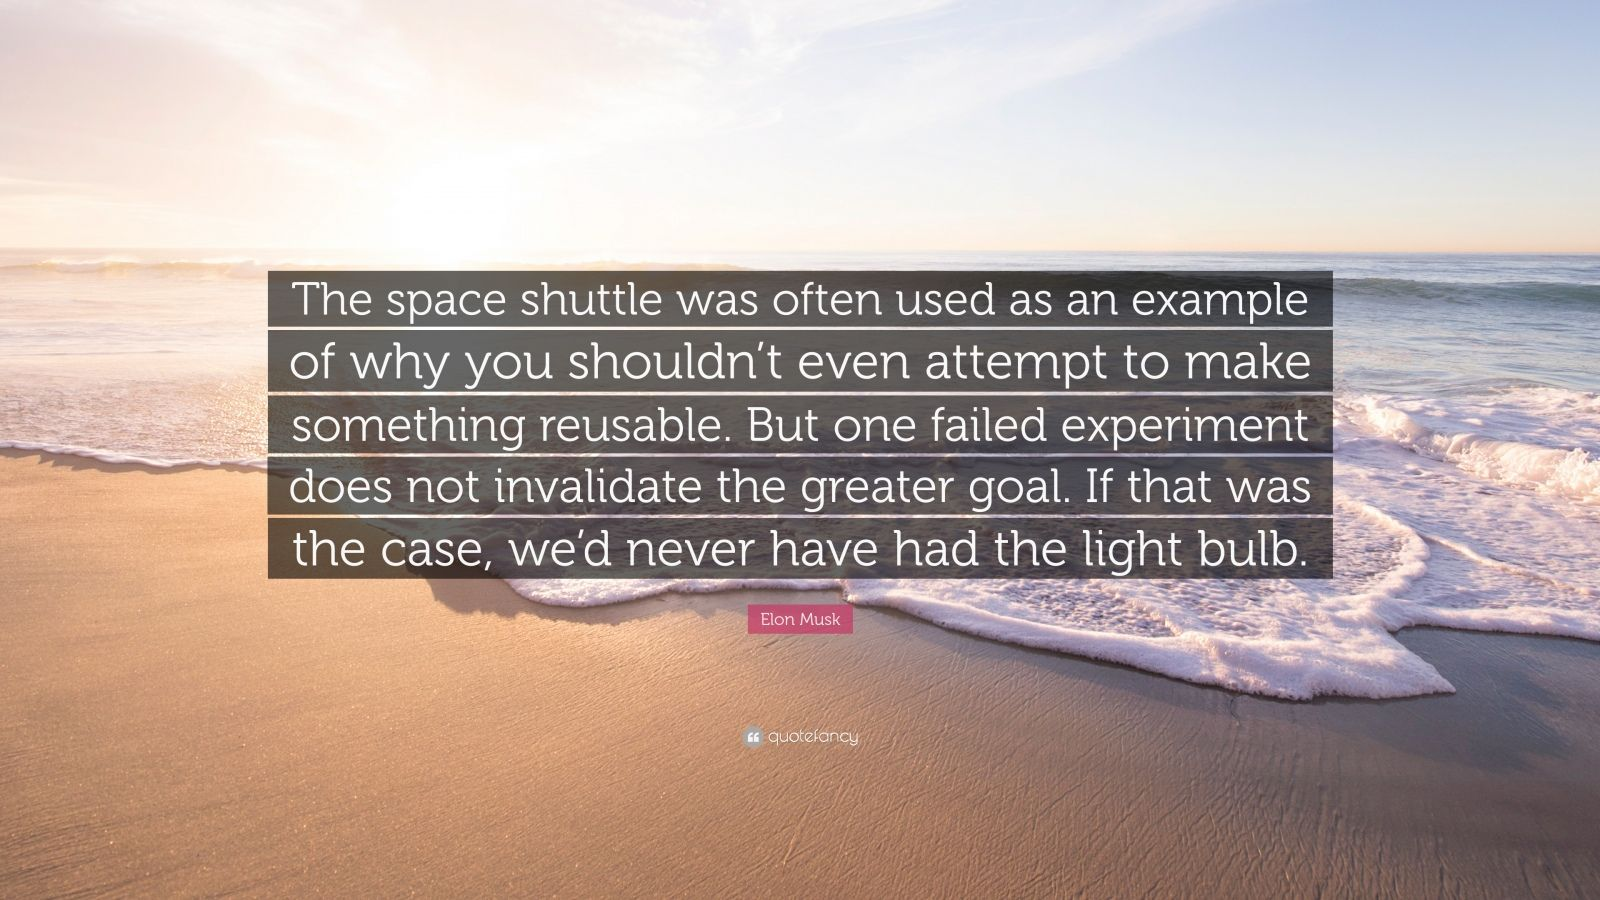 "Elon Musk Quote: ""The space shuttle was often used as an example of why you shouldn't even attempt to make something reusable. But one failed experiment does not invalidate the greater goal. If that was the case, we'd never have had the light bulb."""